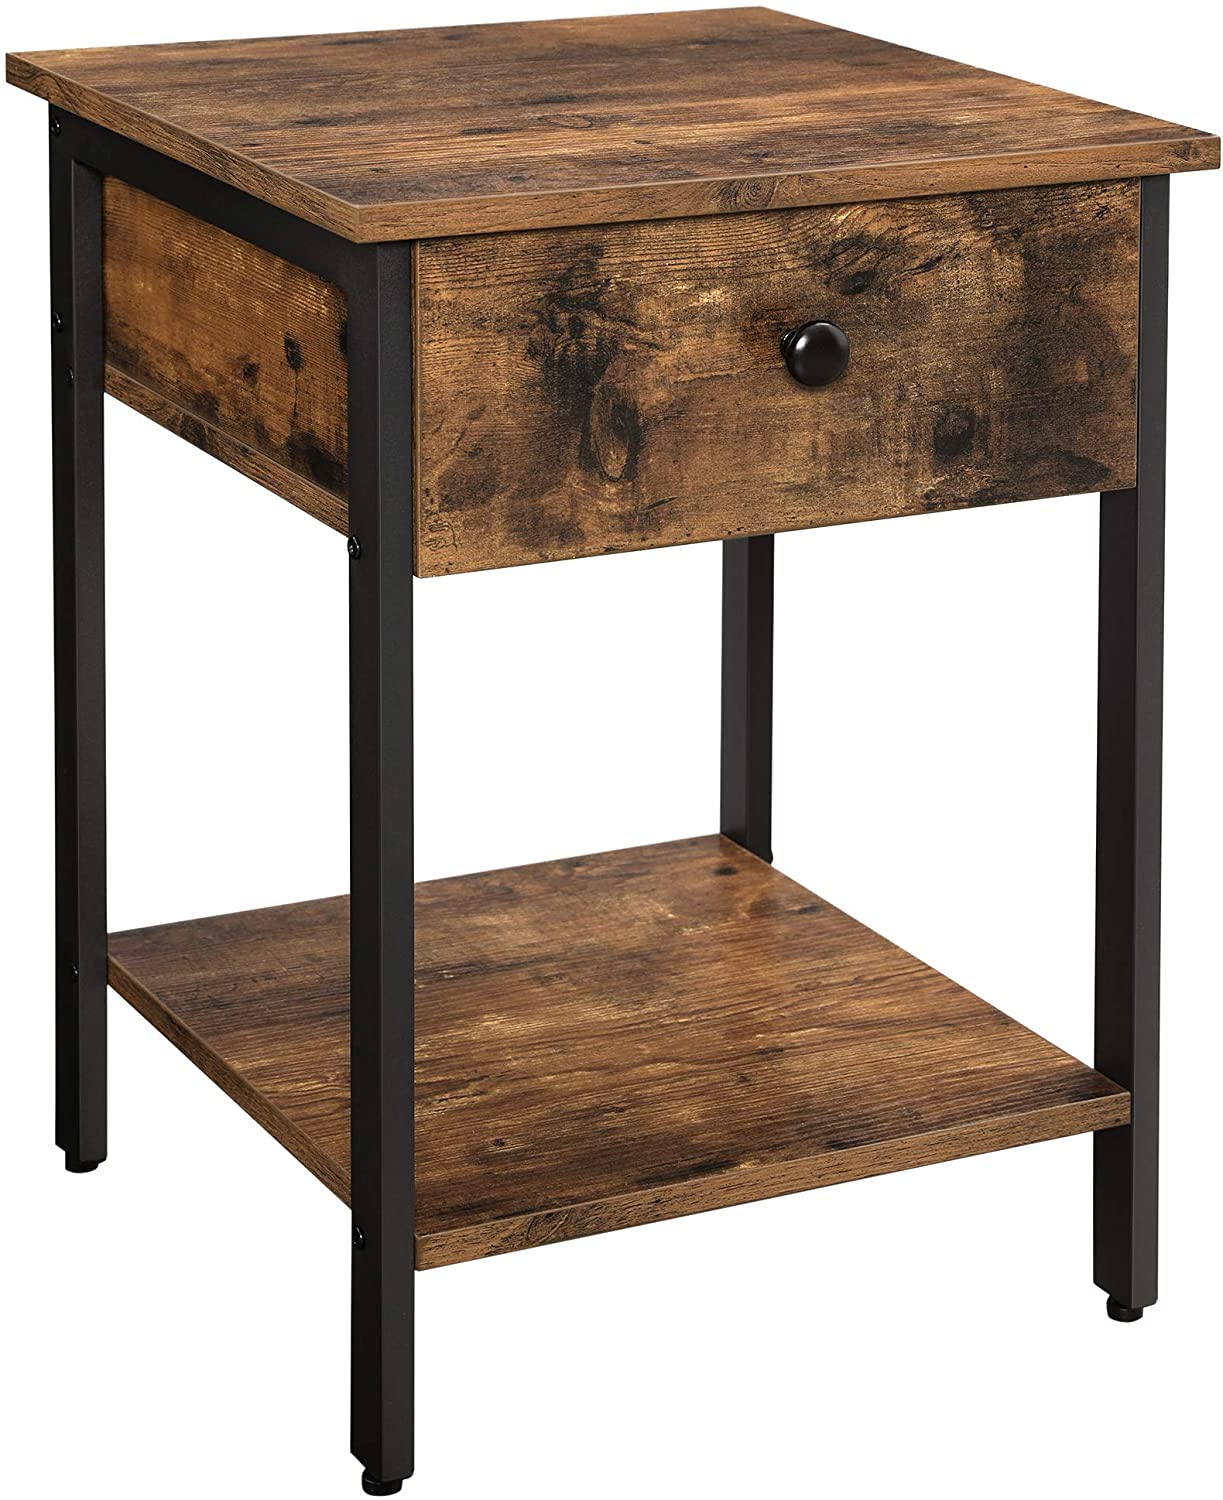 Enjoy fast, free nationwide shipping!  Owned by a husband and wife team of high-school music teachers, HawkinsWoodshop.com is your one stop shop for affordable furniture.  Shop HawkinsWoodshop.com for solid wood & metal modern, traditional, contemporary, industrial, custom, rustic, and farmhouse furniture including our Ryan End Table Nightstand with Drawer.